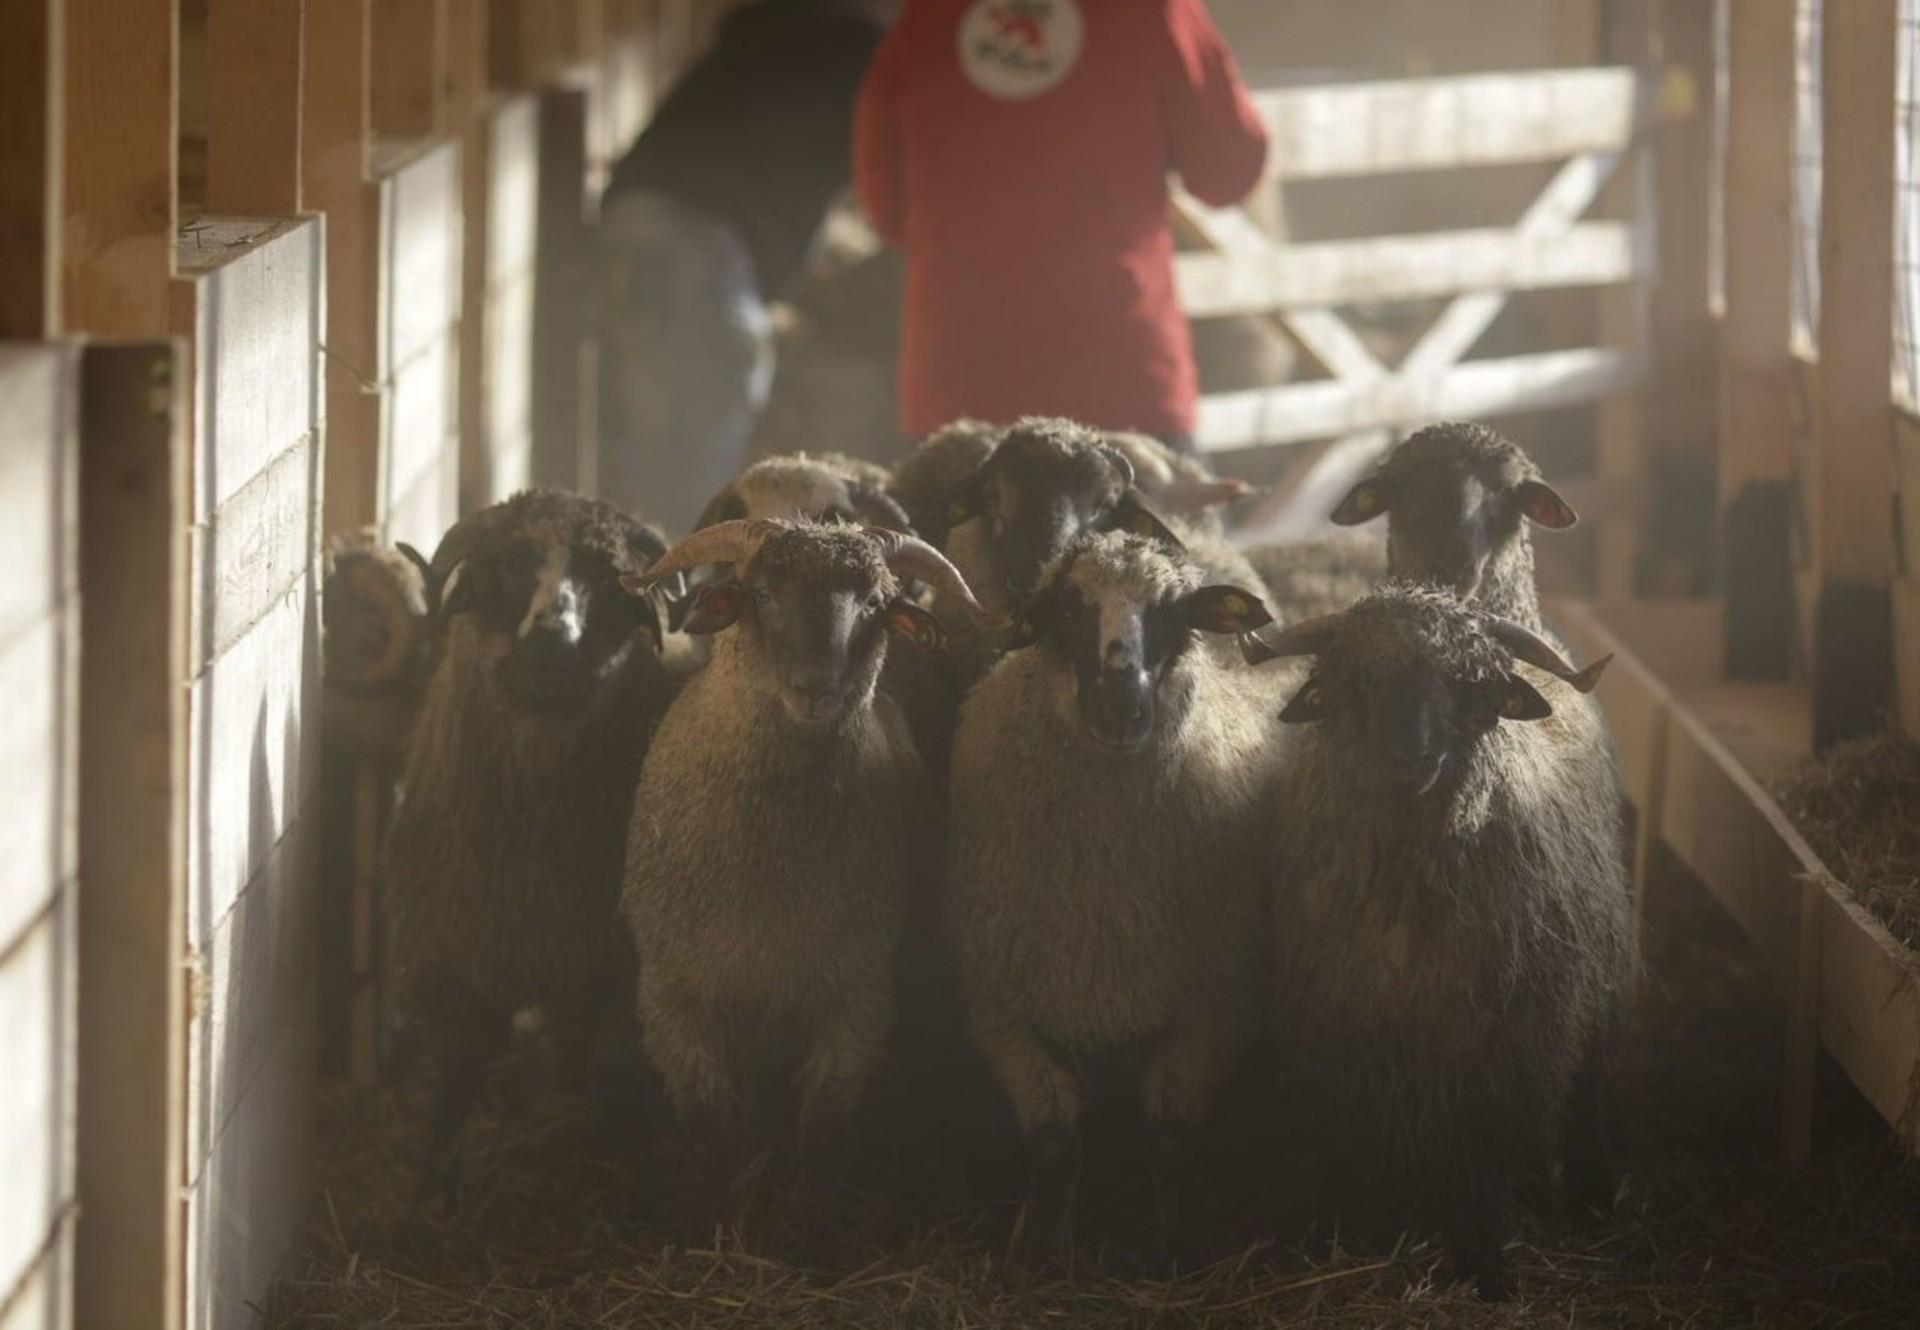 Rescued sheep arrive at new home